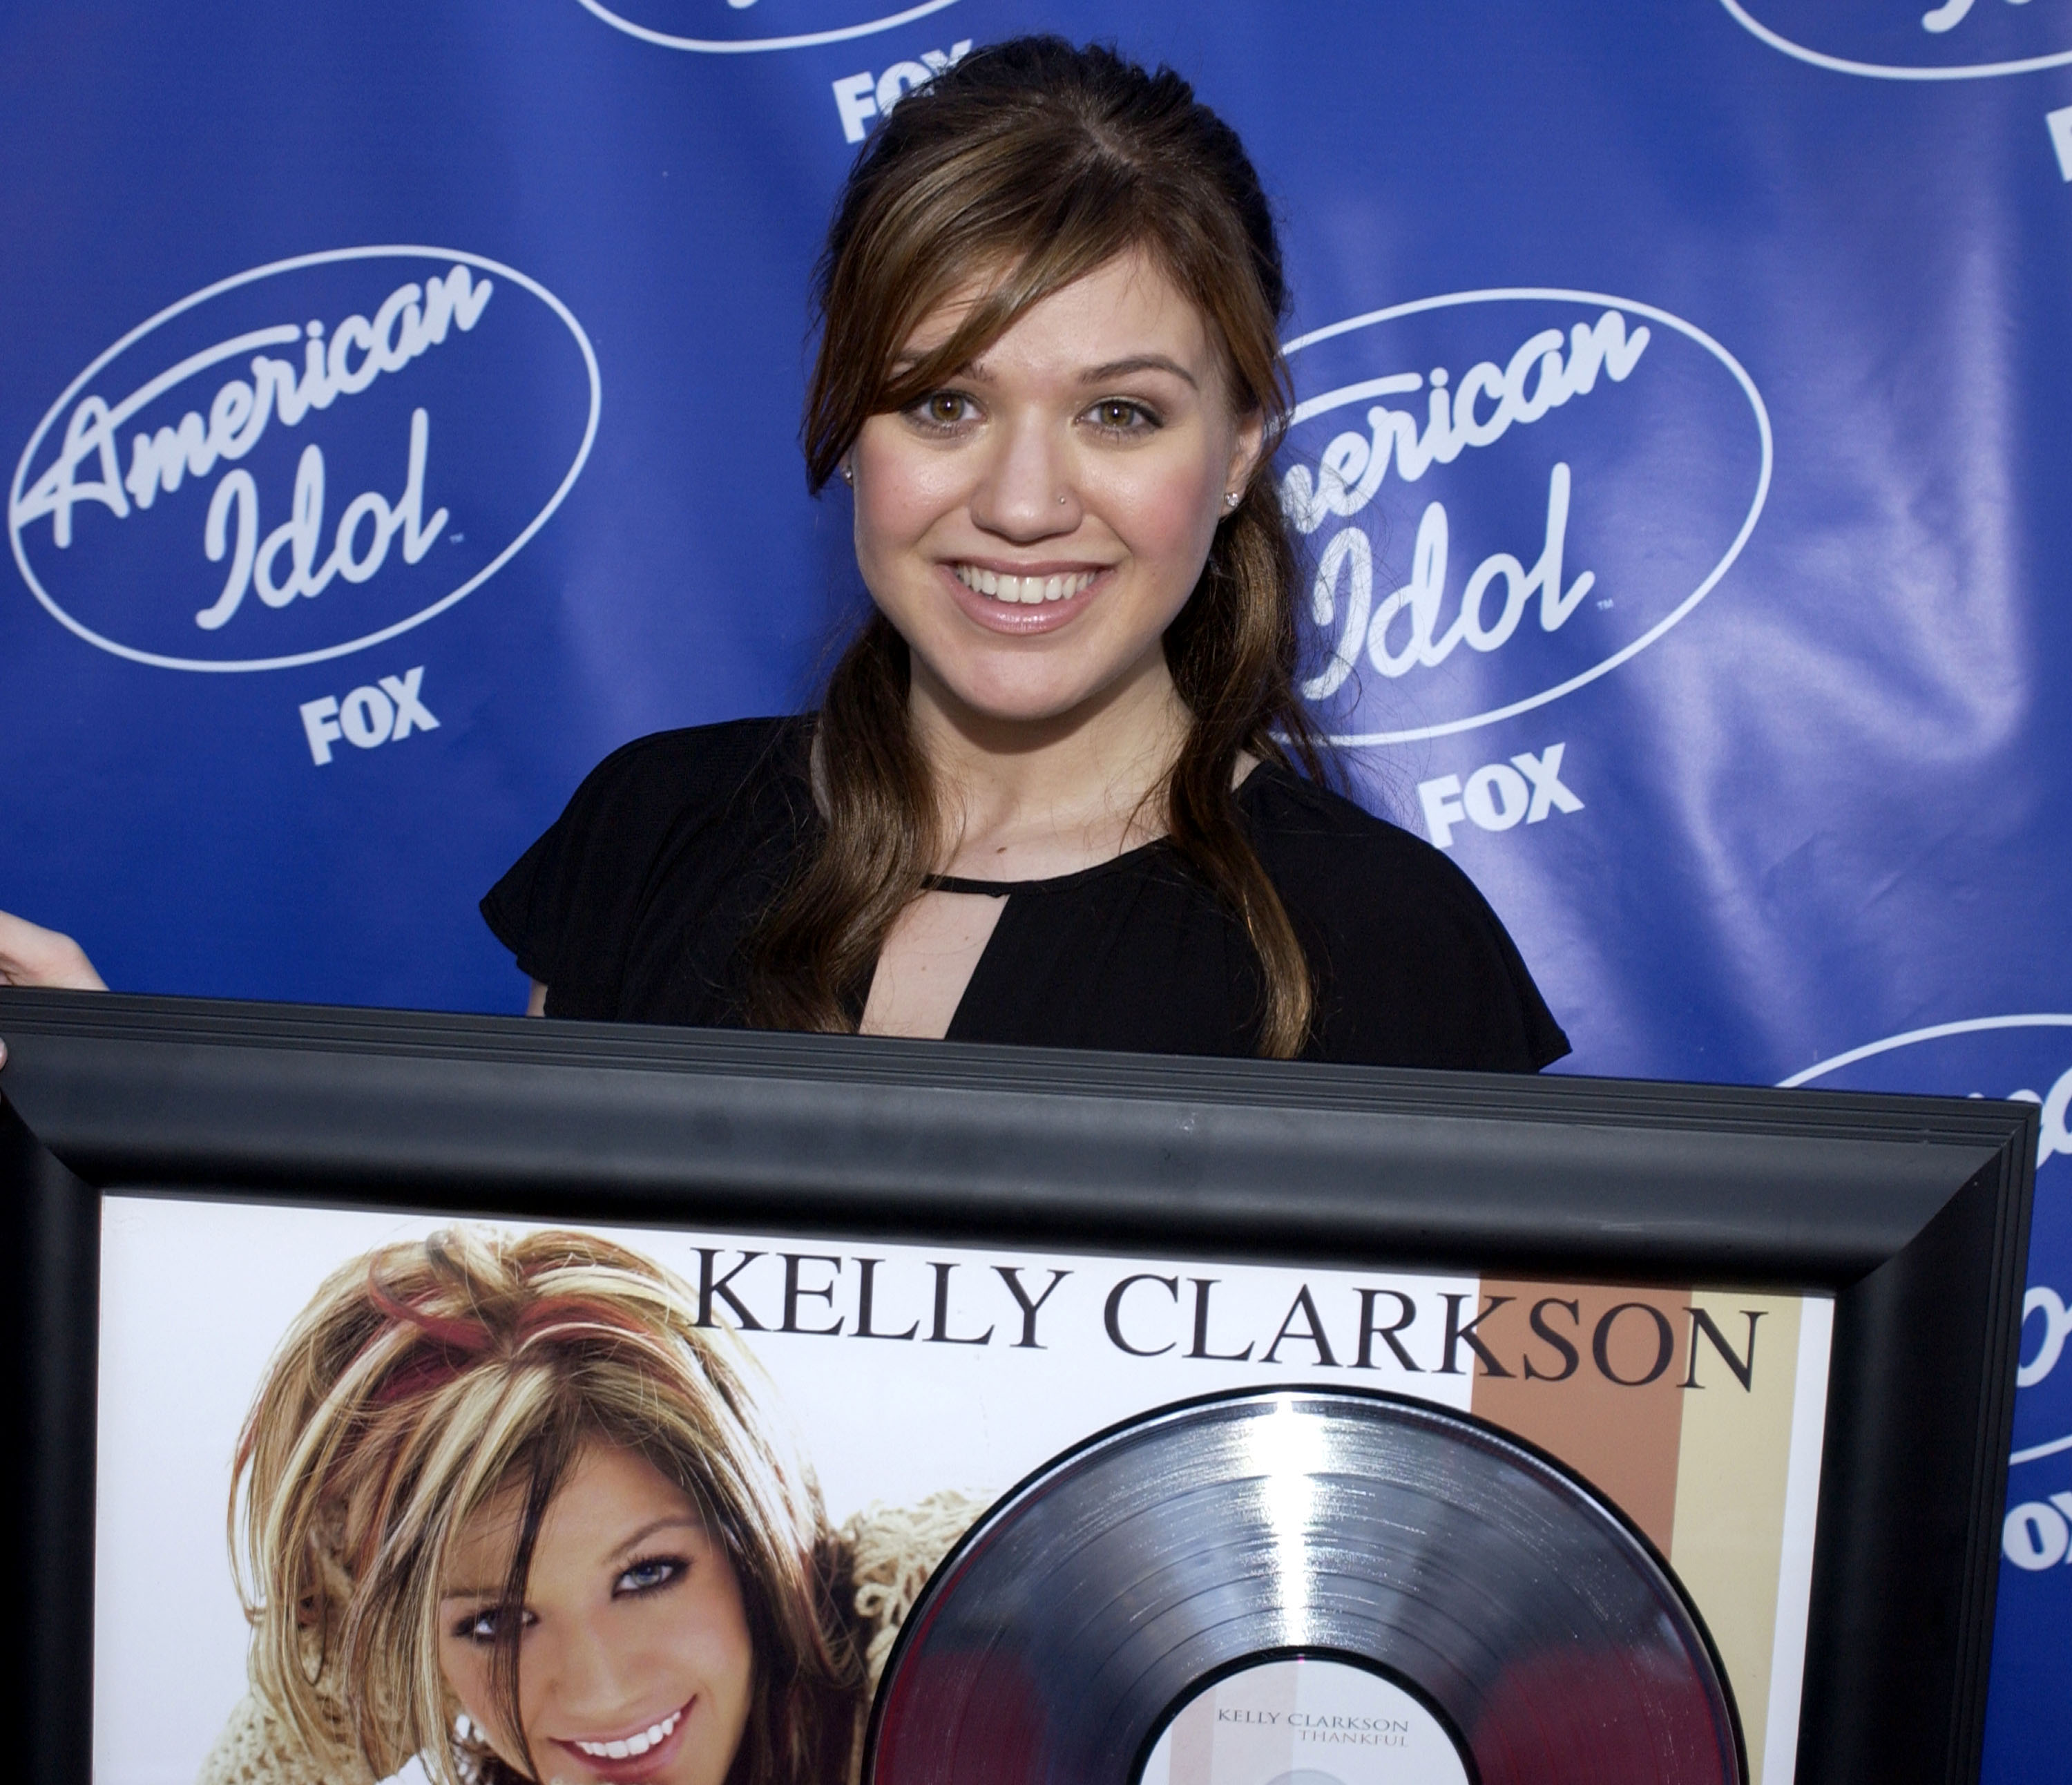 """American Idol"" Season 2 Finale - Kelly Clarkson Receives Her Platinum Album Backstage"